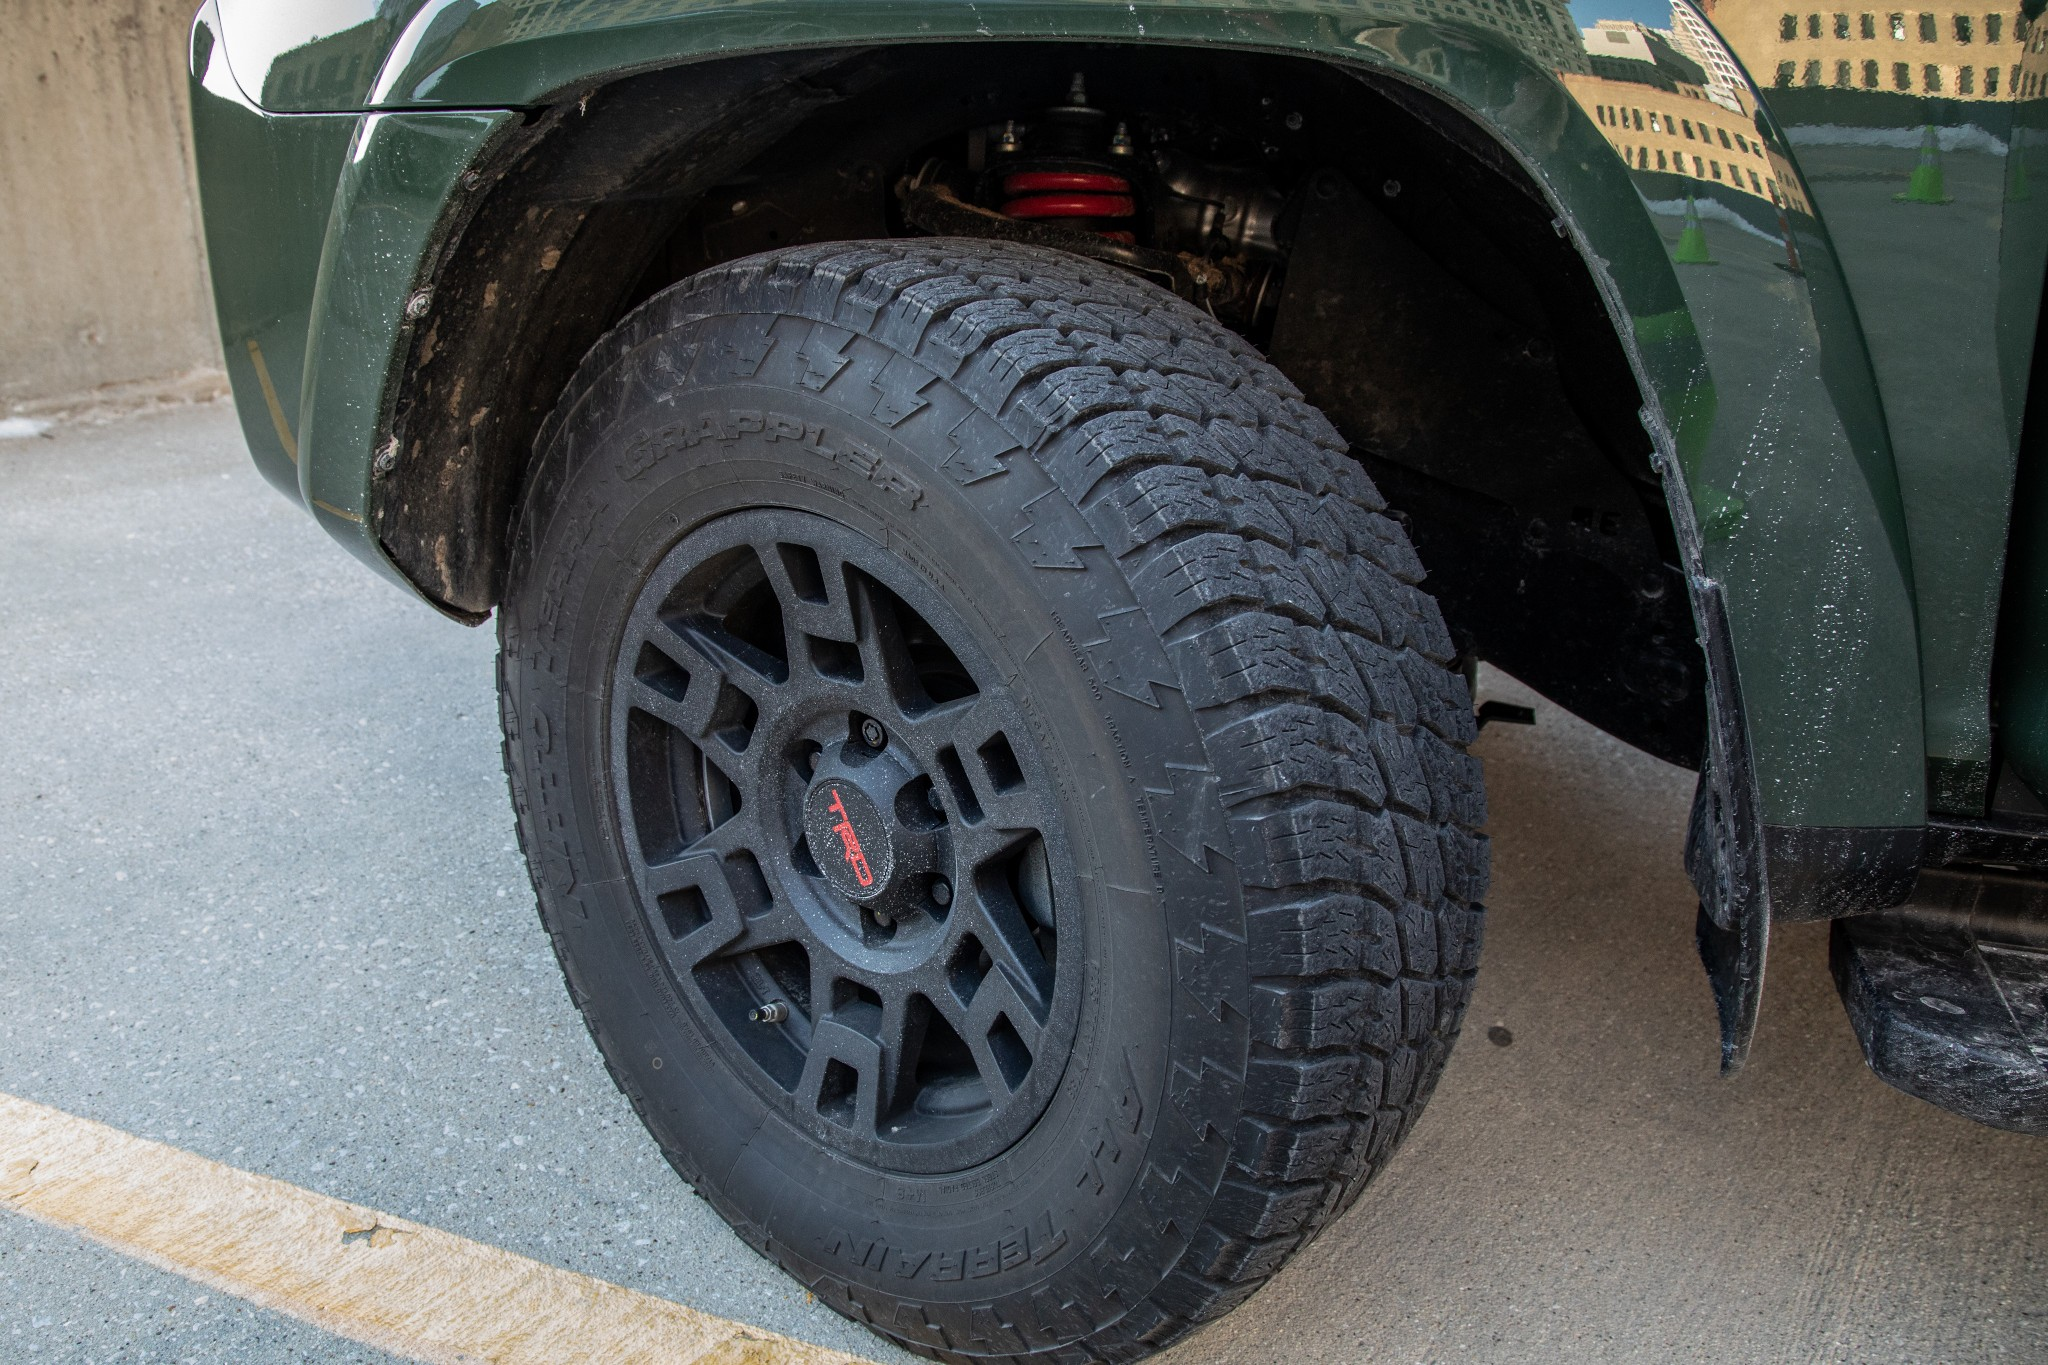 4runner-trd-pro-exterior--green--wheel-31.jpg